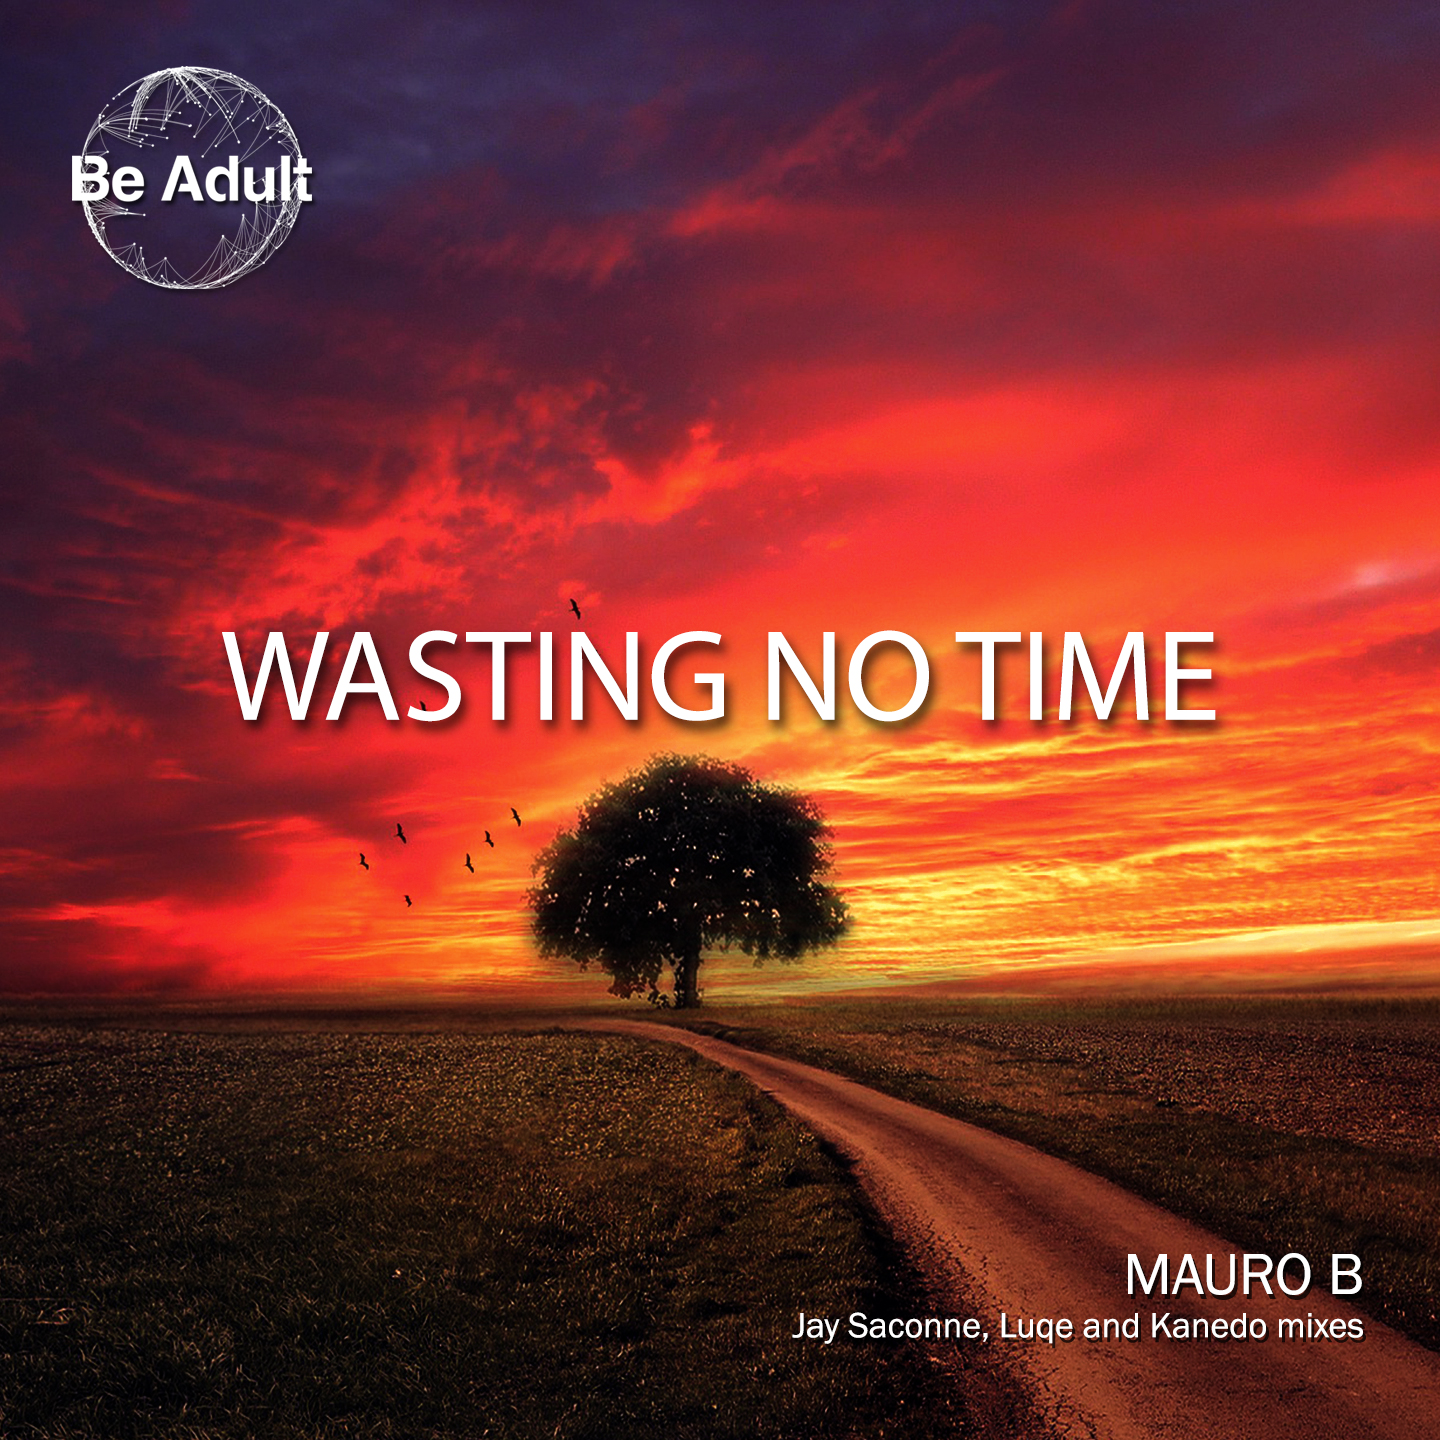 Mauro-B---Wasting-No-Time-Jay-Saconne_-Luqe-and-Kanedo-Mixes-v2